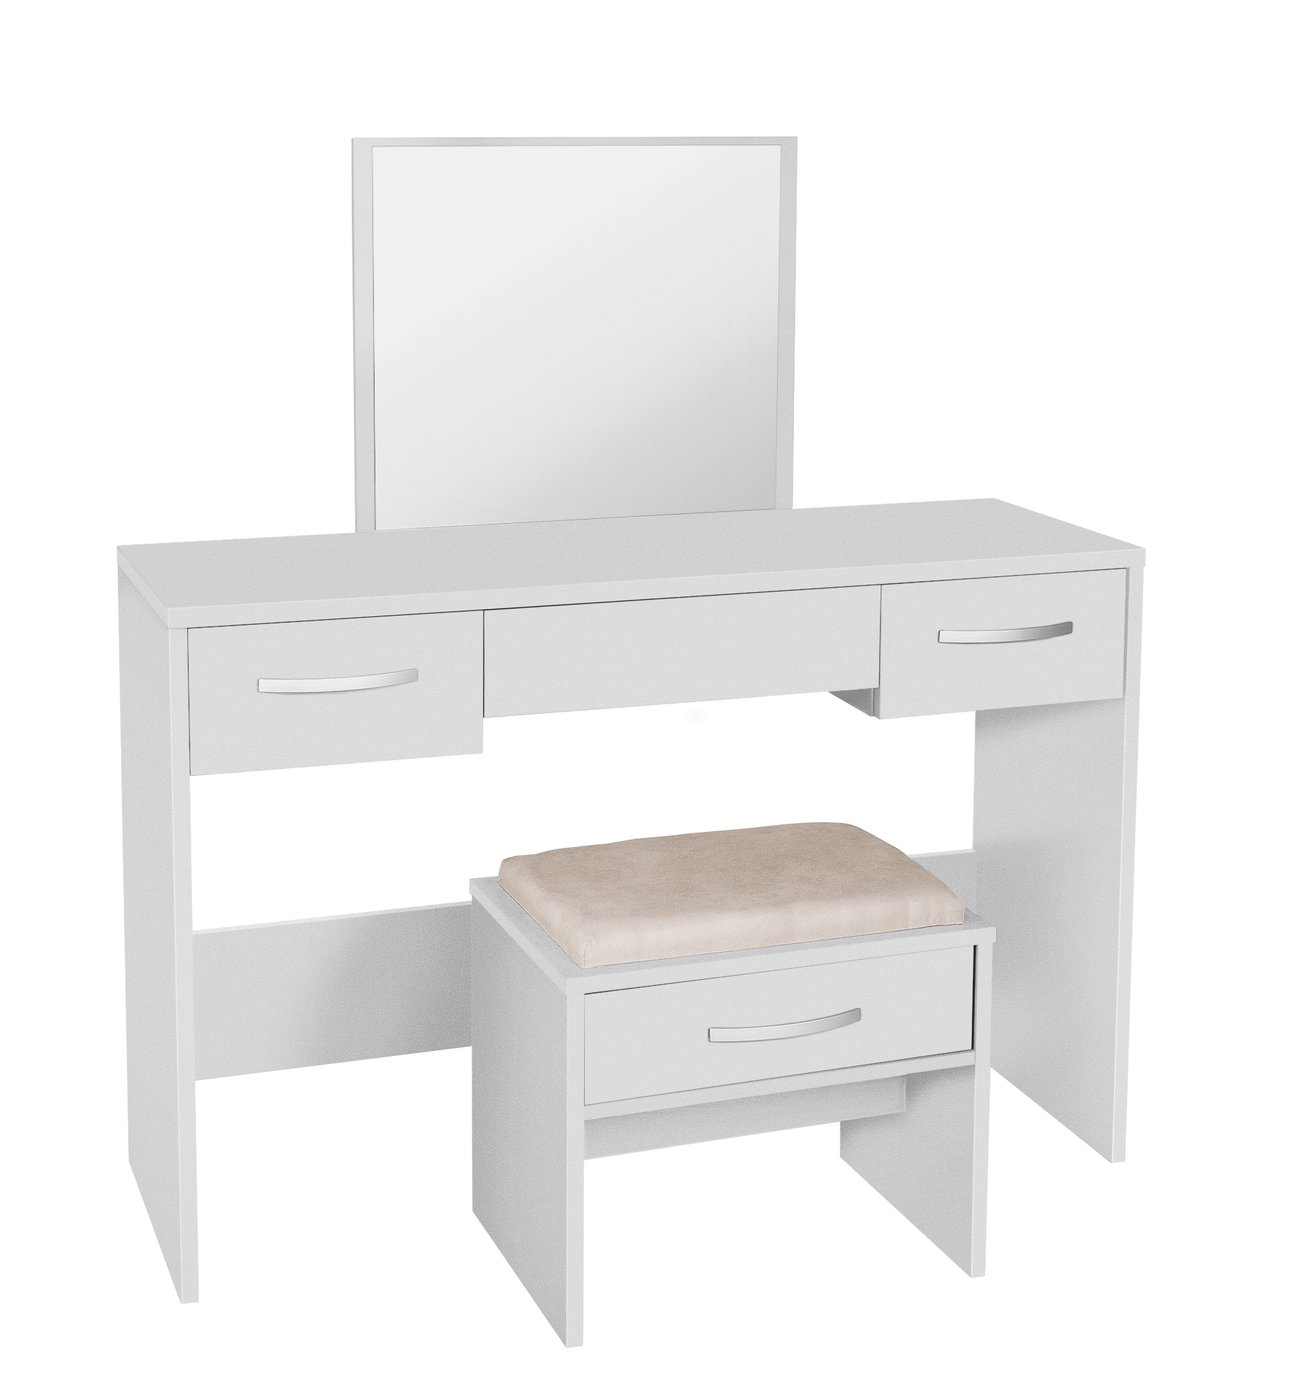 Image of Collection Hallingford Dressing Table - White